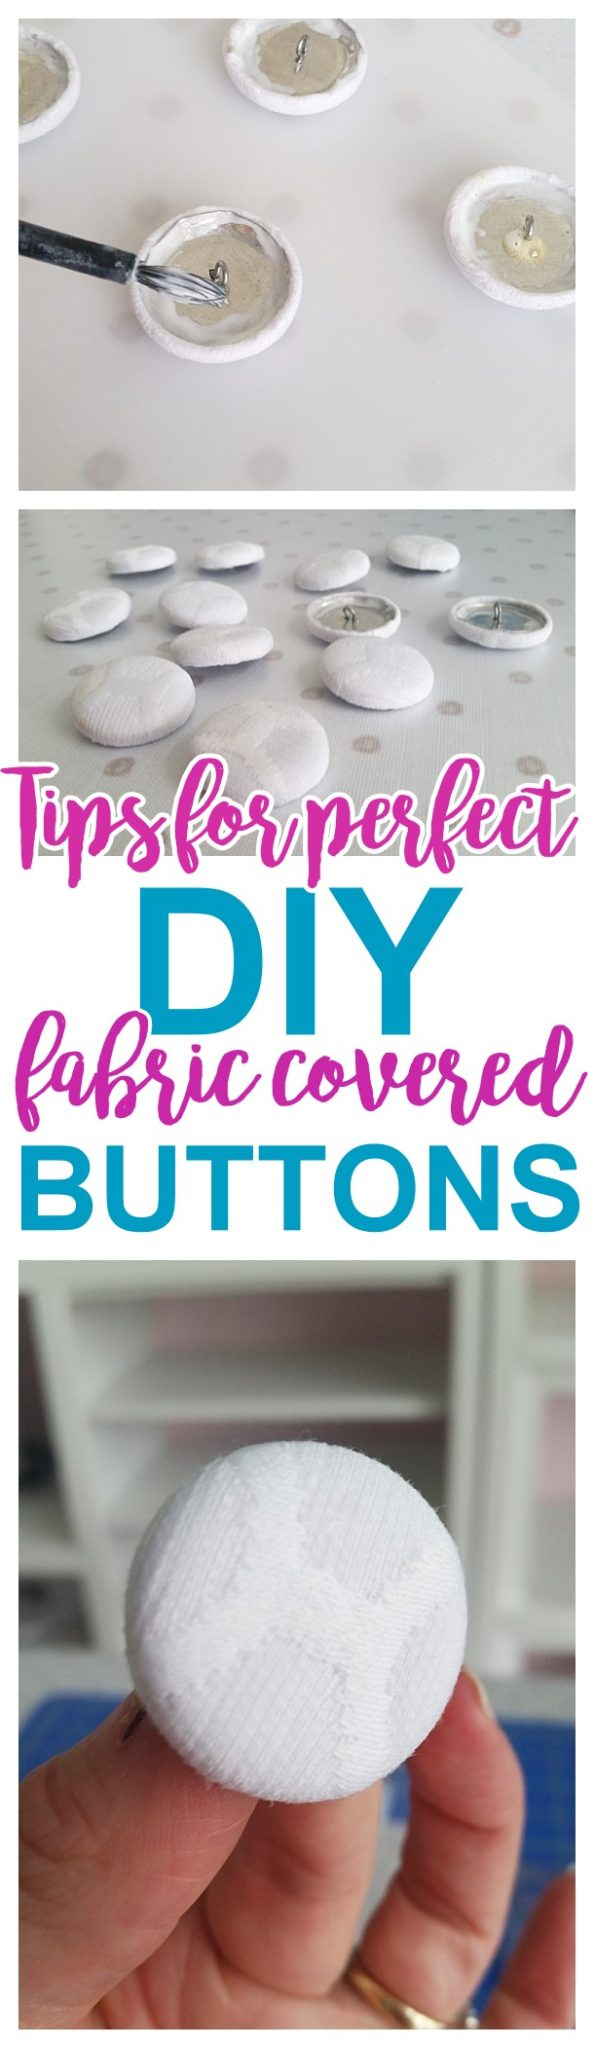 TIPS for making the PERFECT Sturdy Do it Yourself Fabric Covered Buttons for your DIY Upholstry projects and Crafts